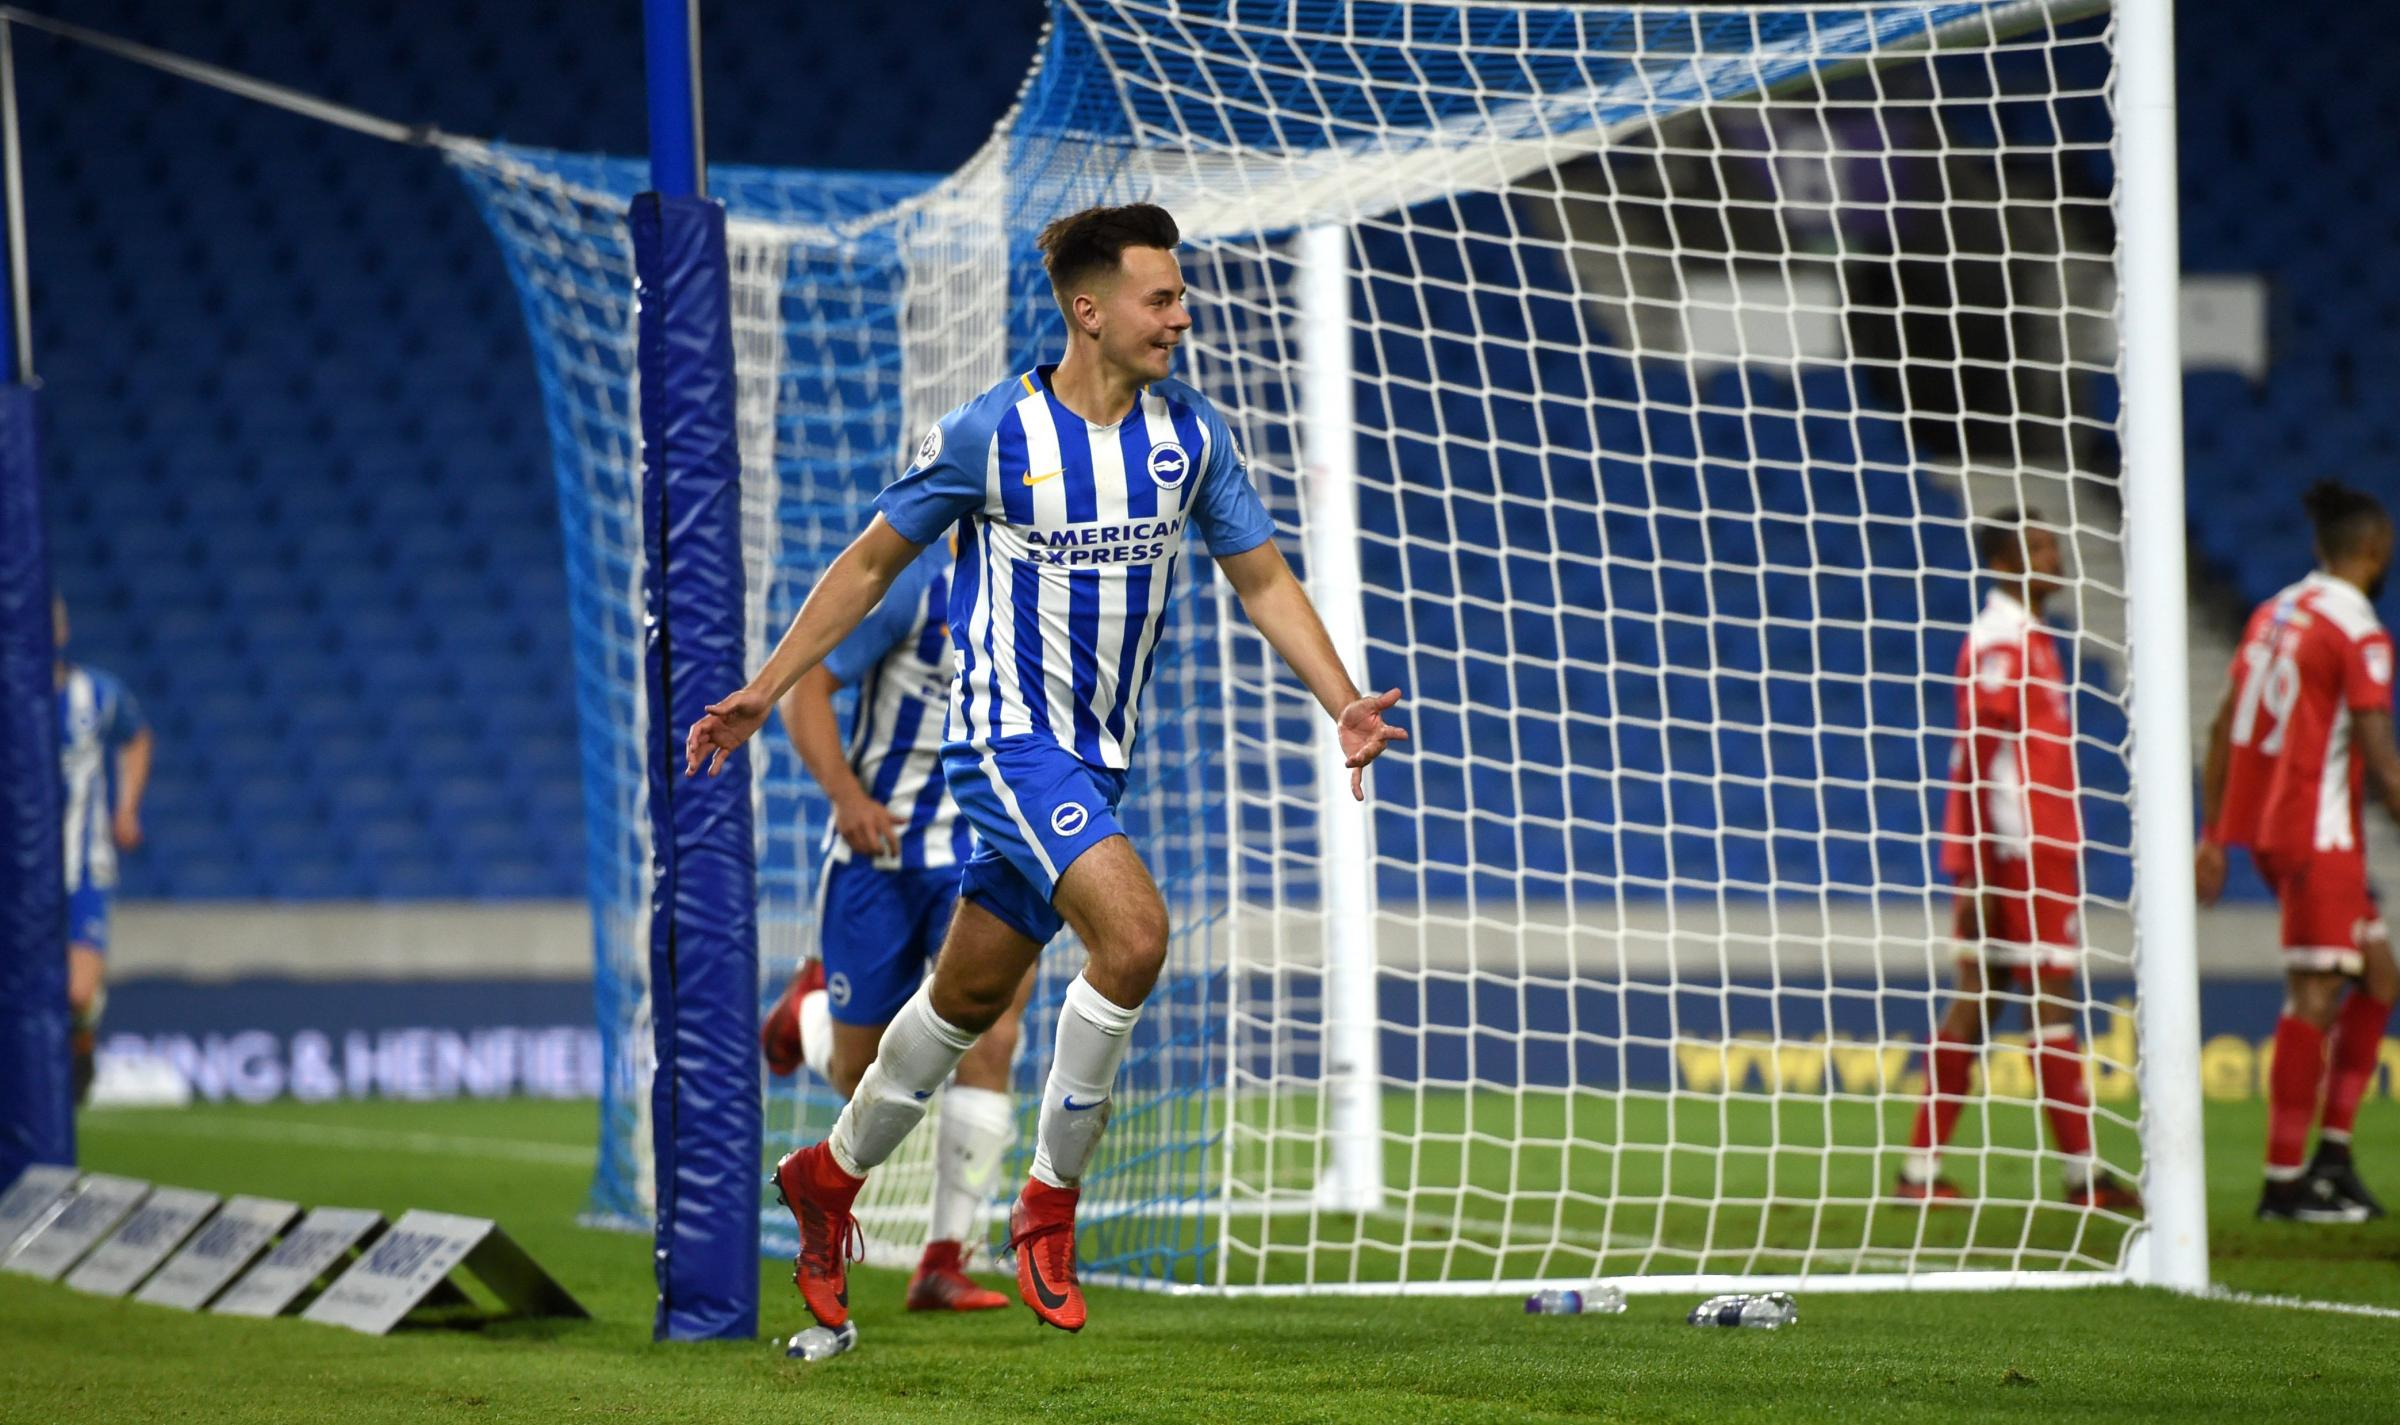 Albion under-23s ease to Senior Cup win at Hastings United